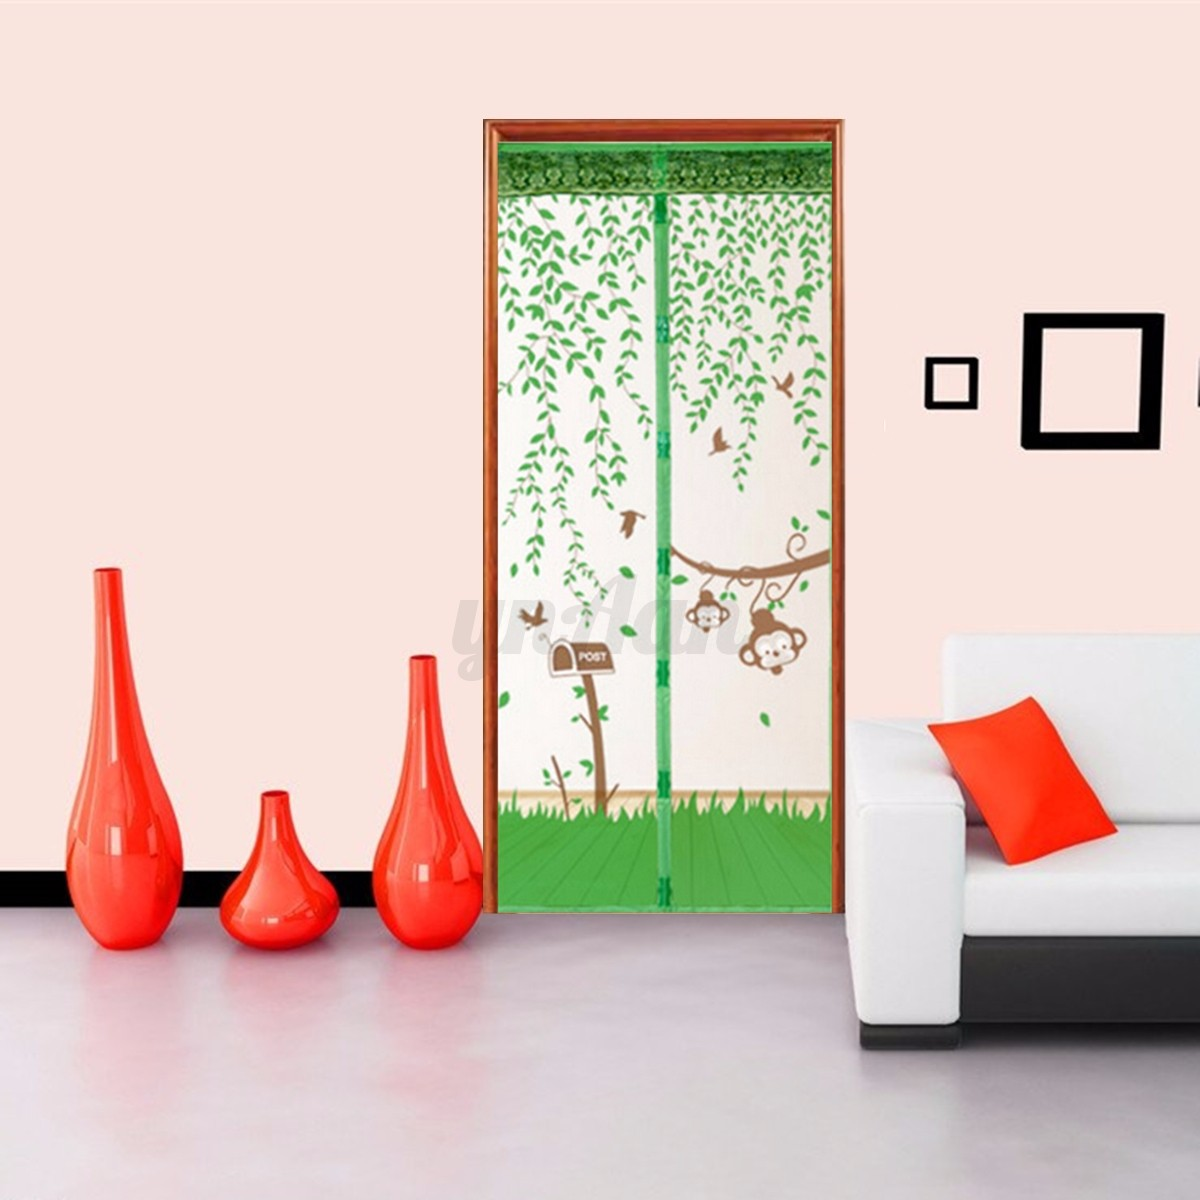 porte porti re maille aimant rideau magique anti insecte mouche moustique maison ebay. Black Bedroom Furniture Sets. Home Design Ideas